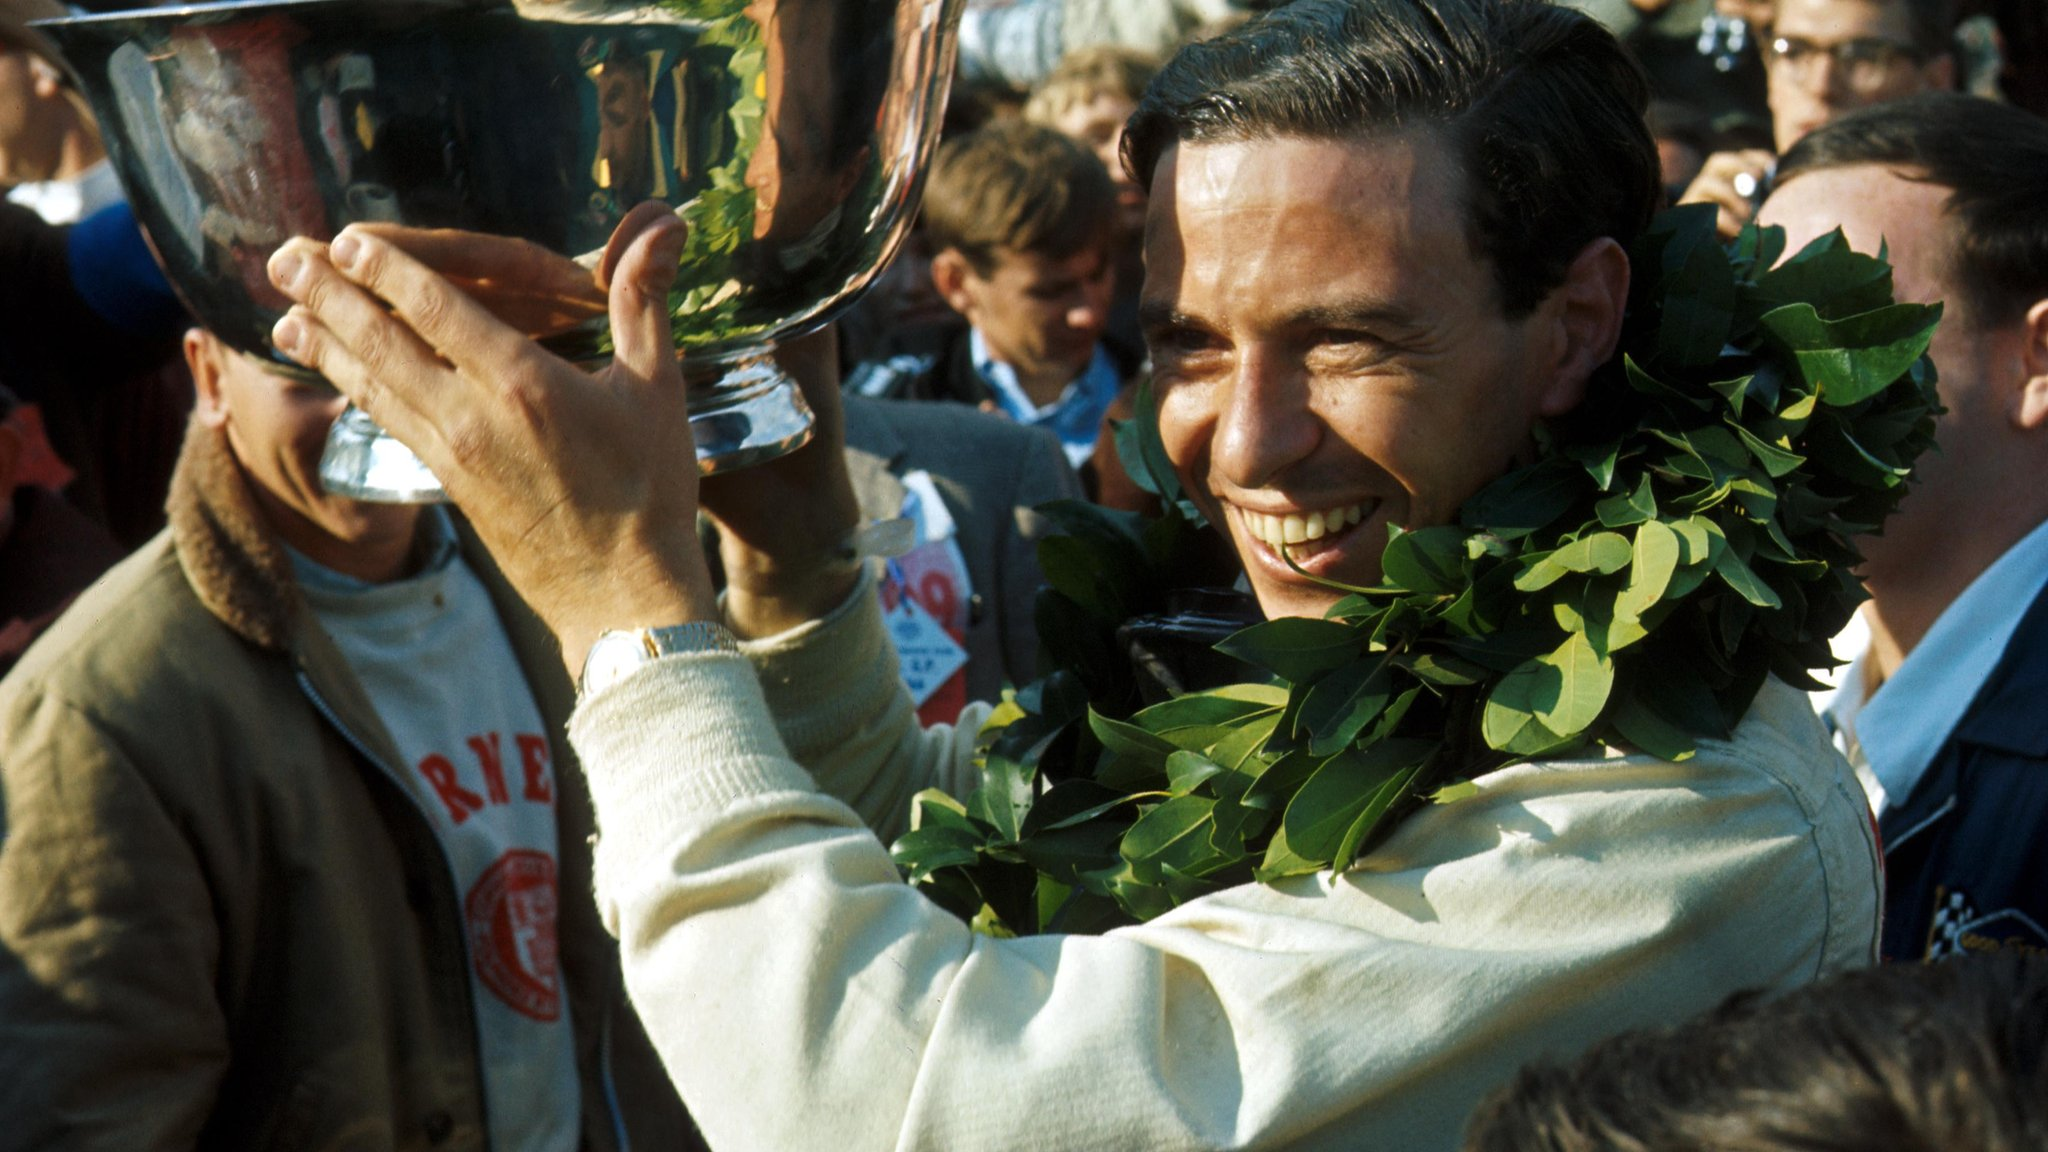 Jim Clark museum given go ahead